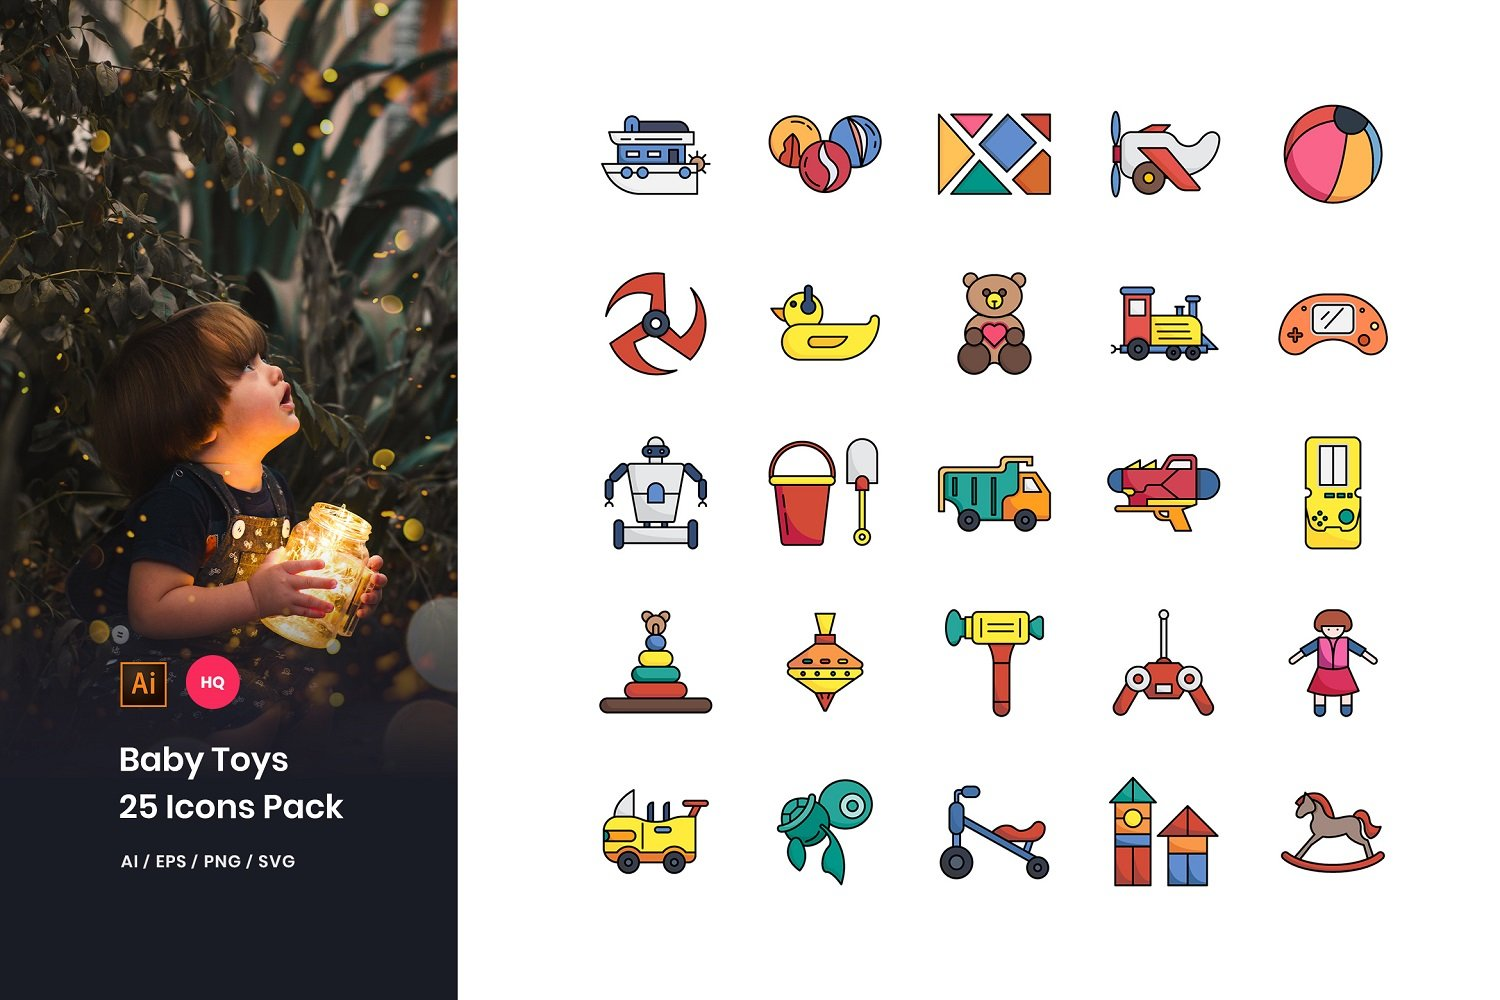 Baby Toys Pack Iconset Template